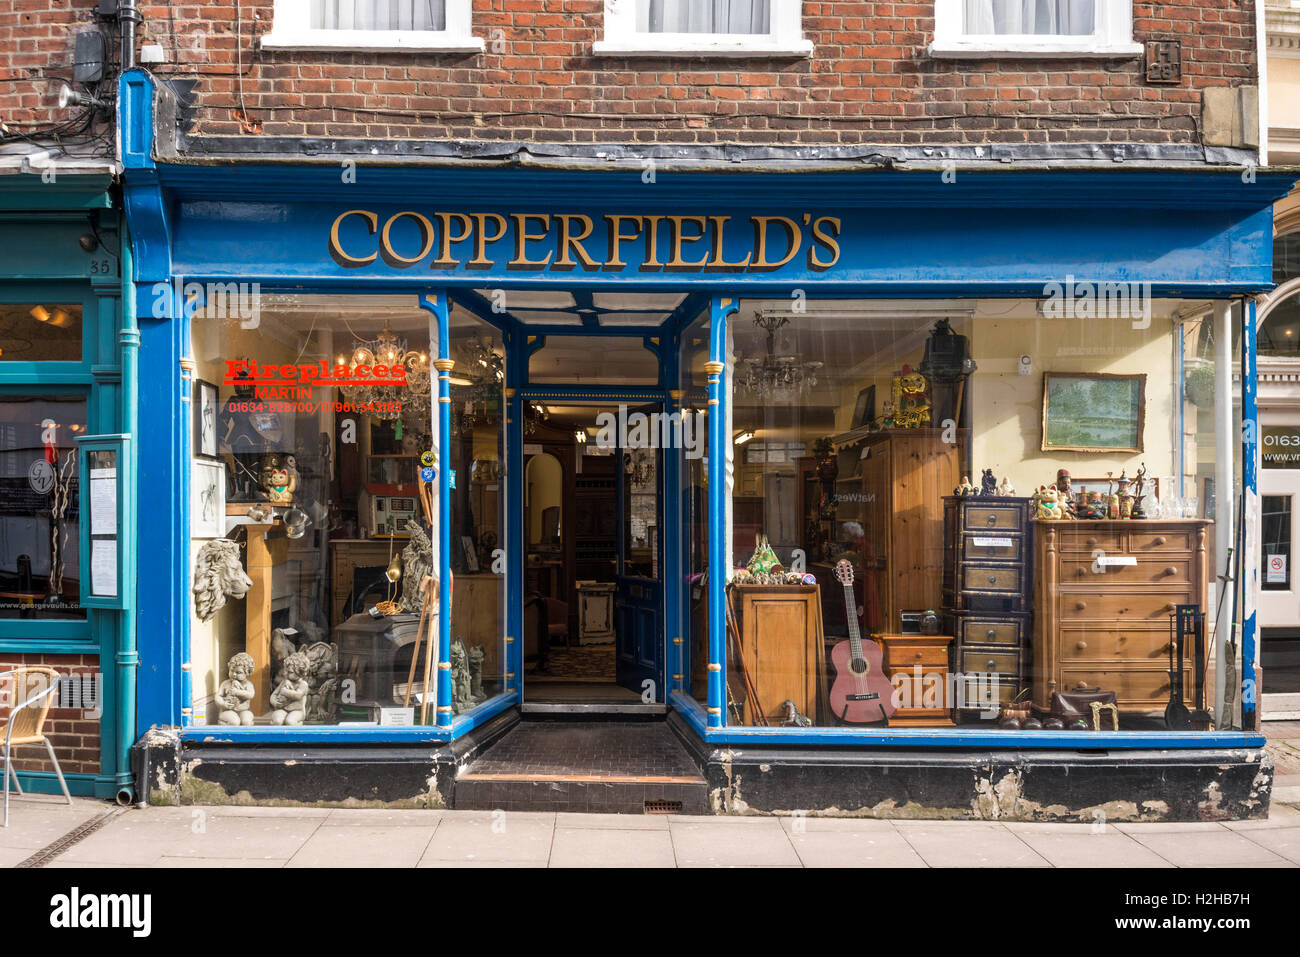 Secondhand Furniture copperfield's secondhand furniture shop, rochester, kent, uk stock